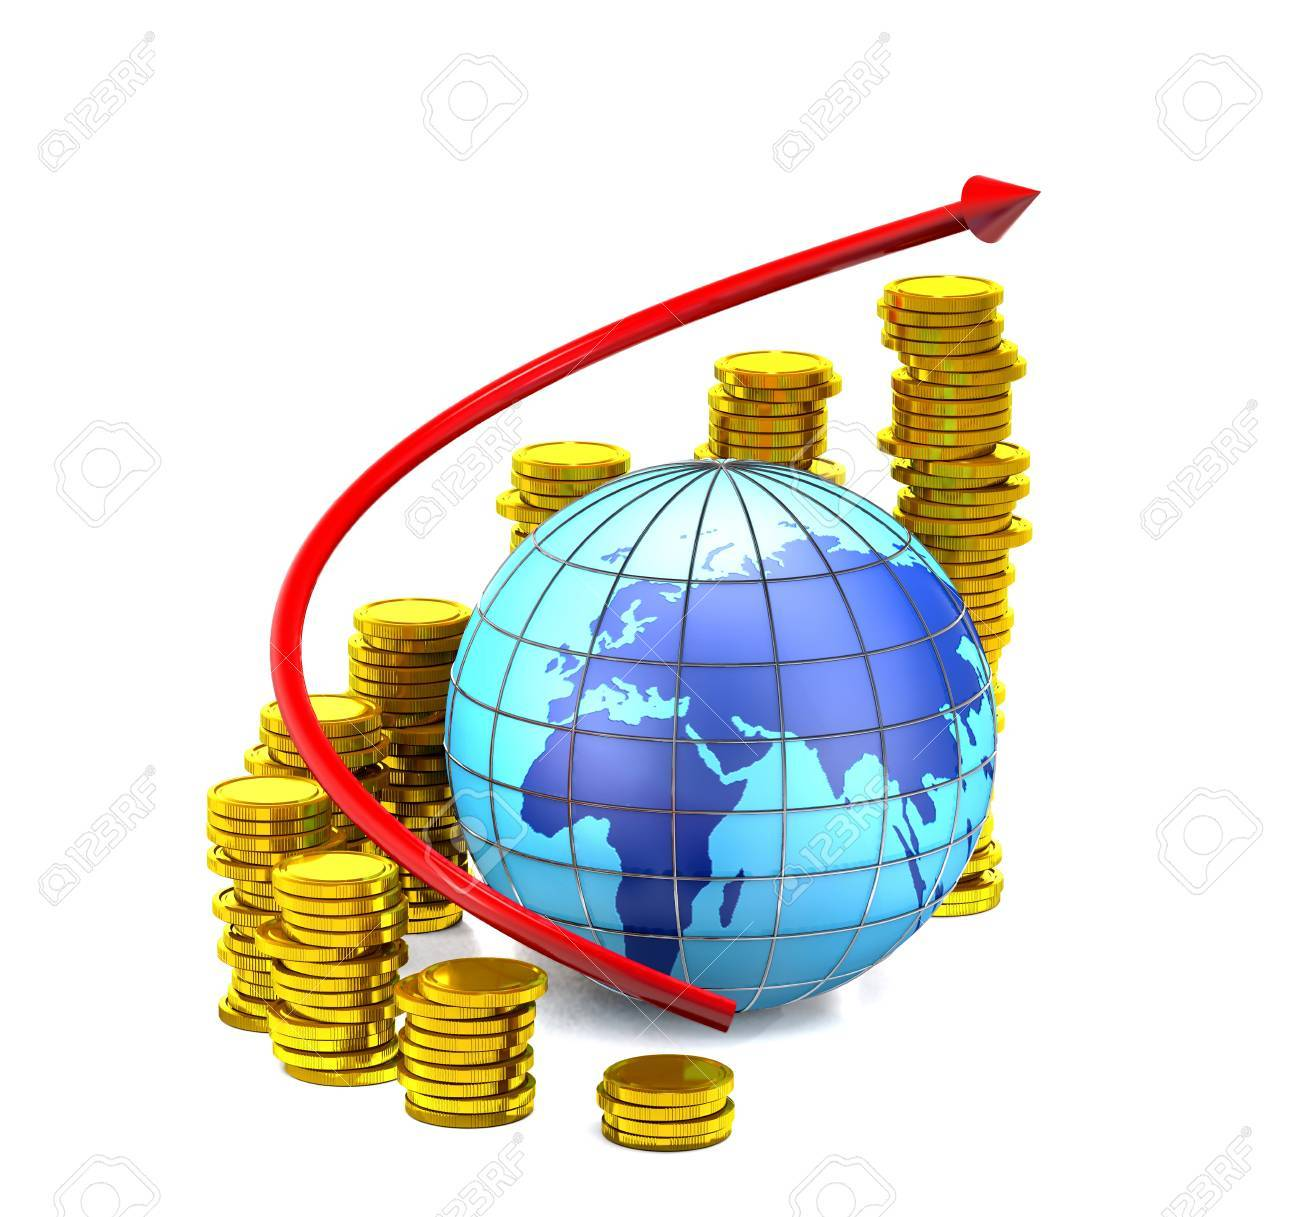 Globe, gold coins and red arrow on white background. - 51466574